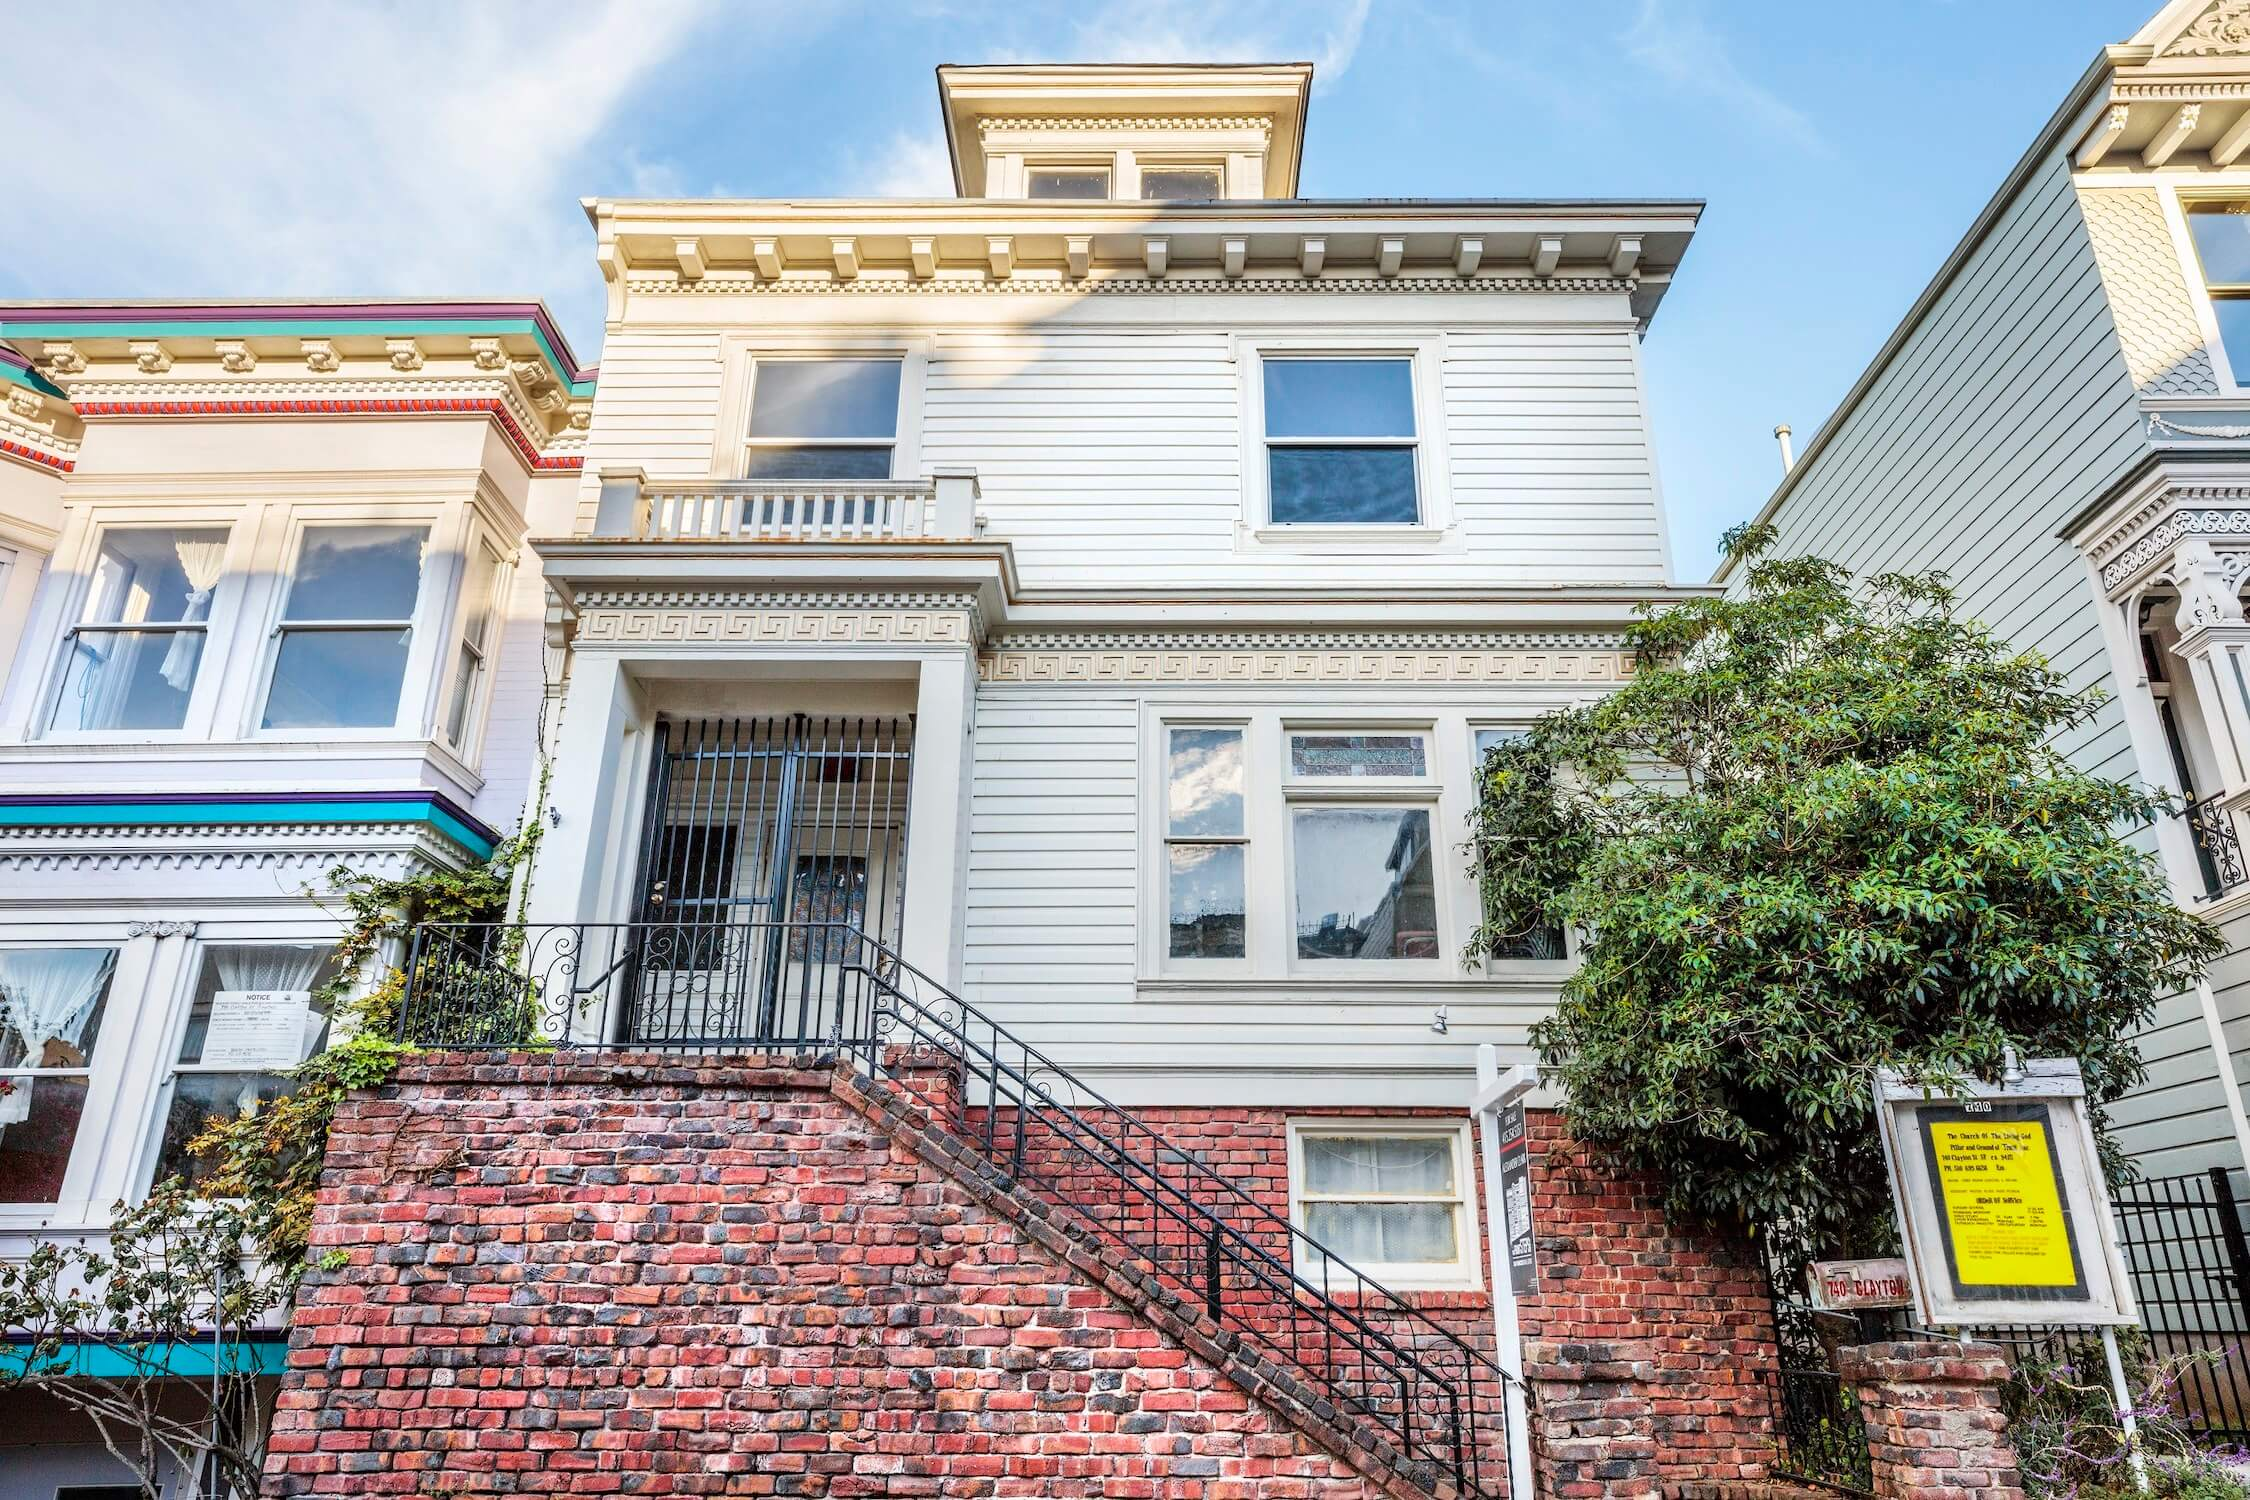 FOR SALE | 740 Clayton | Haight-Ashbury / Cole Valley | $2,495,000